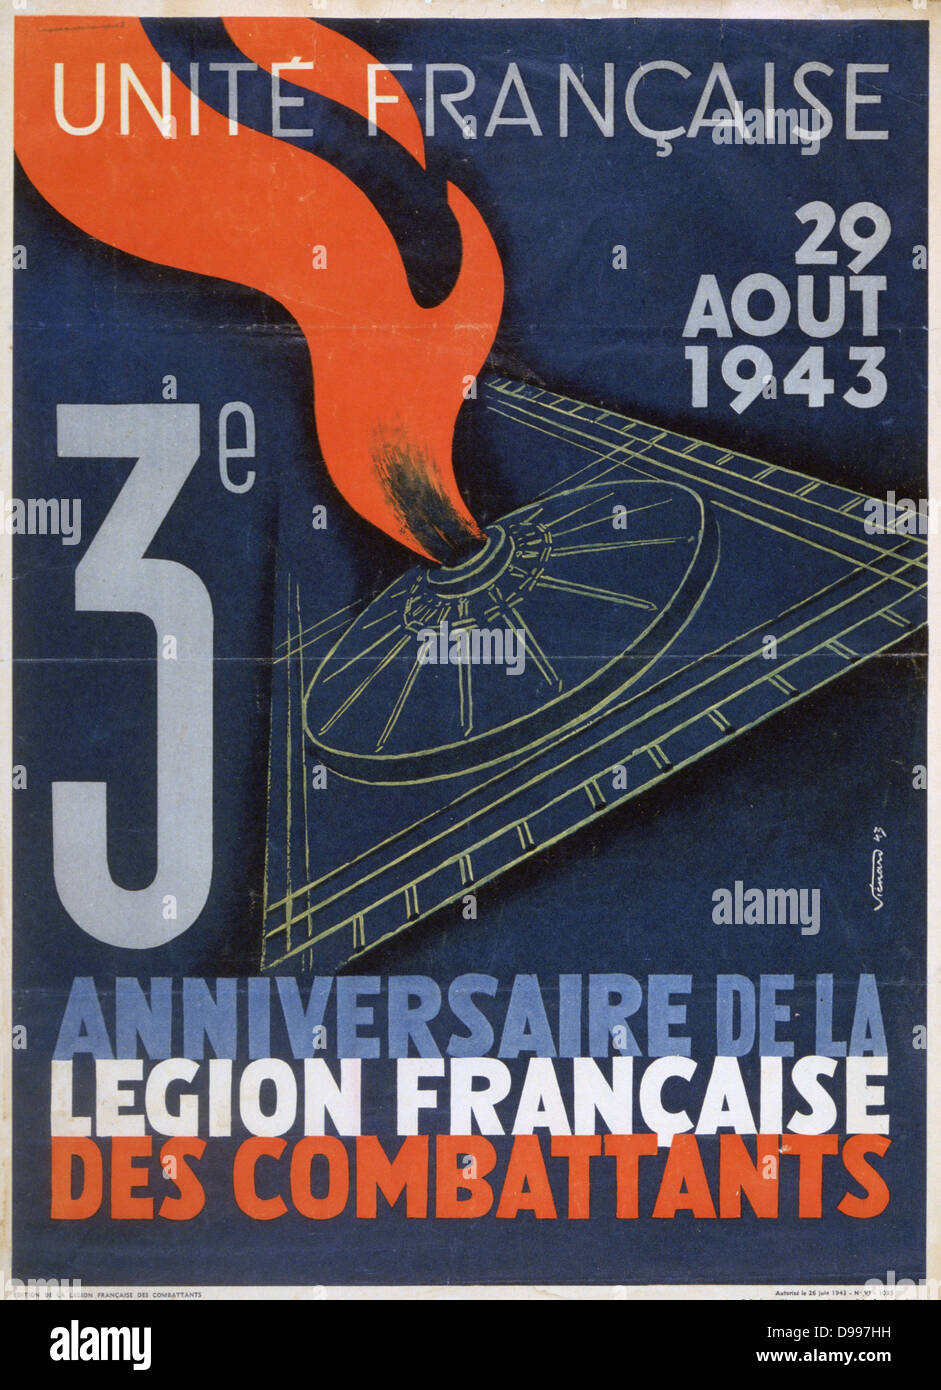 World War II 1939-1945: United France - Poster marking the third anniversary of the French Fighting Legion, France, - Stock Image